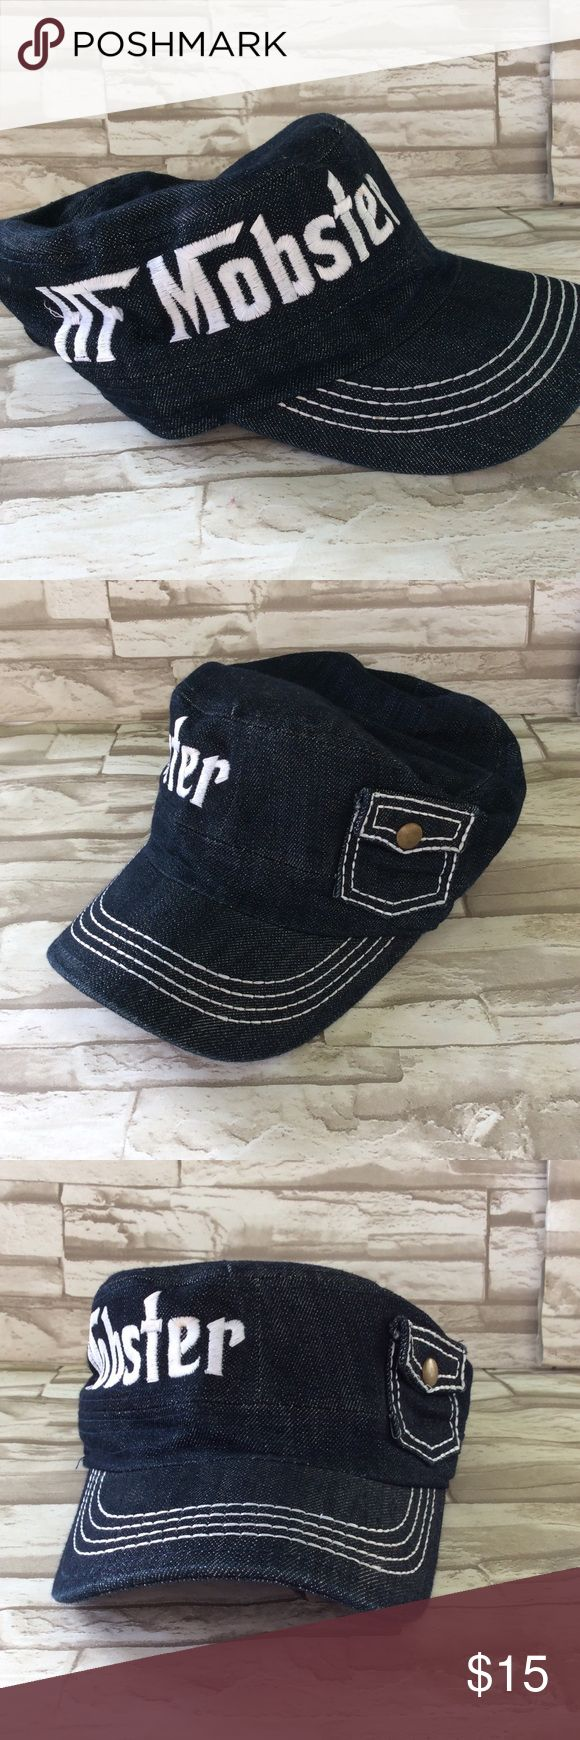 "💜Mobster Cap by Pitbull Great hat from Pitbull. Blue denim page boy style hat with ""HF Mobster"" embroidered on the side. There's also a small pocket. Bill is in great shape, and it's very clean. Women's size. Pitbull Accessories Hats"